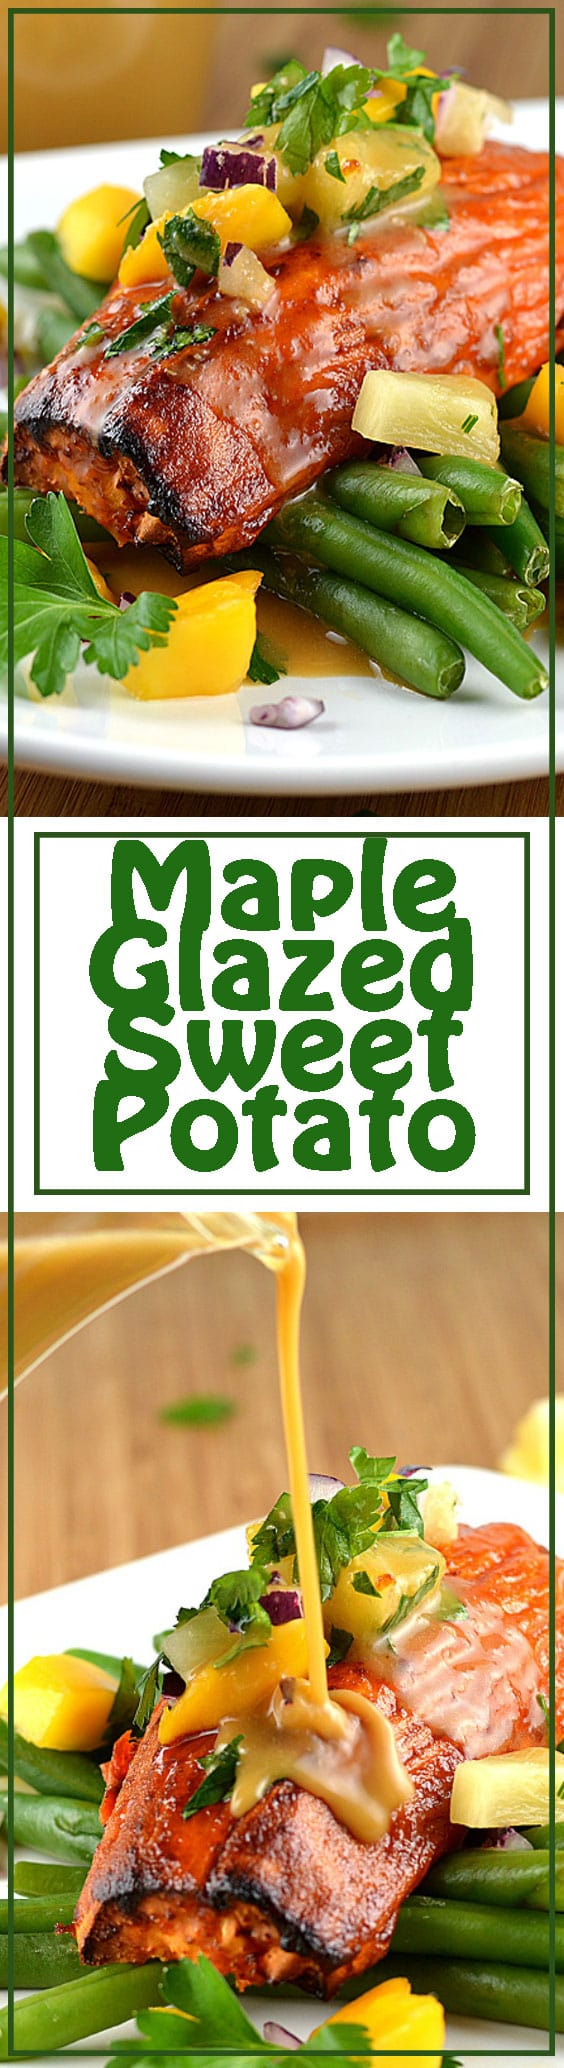 MAPLE-GLAZED-SWEET-POTATO-PINTEREST